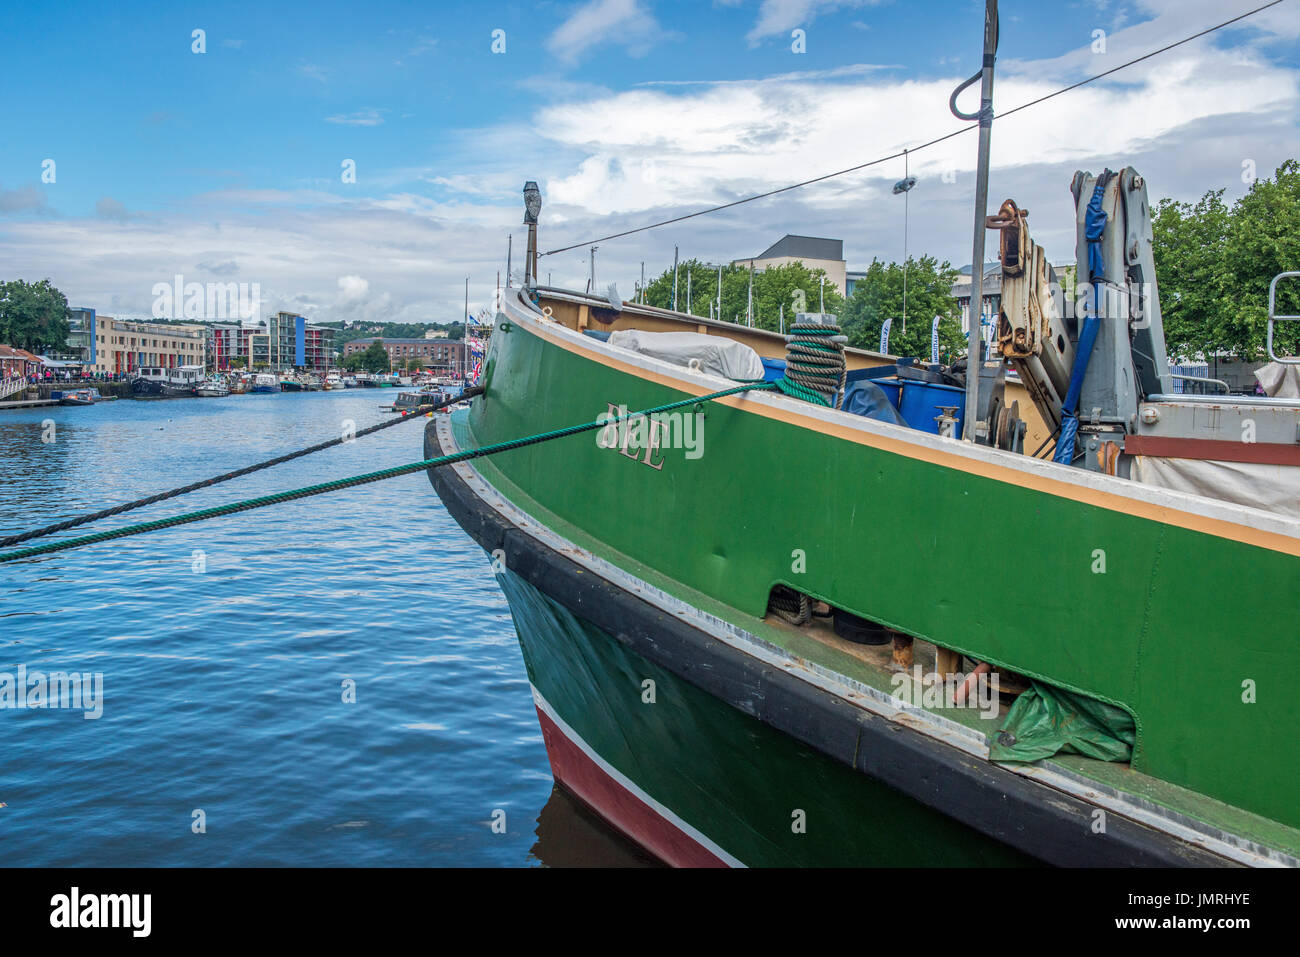 Bee, a green painted trawler in Bristol Harbour - Stock Image